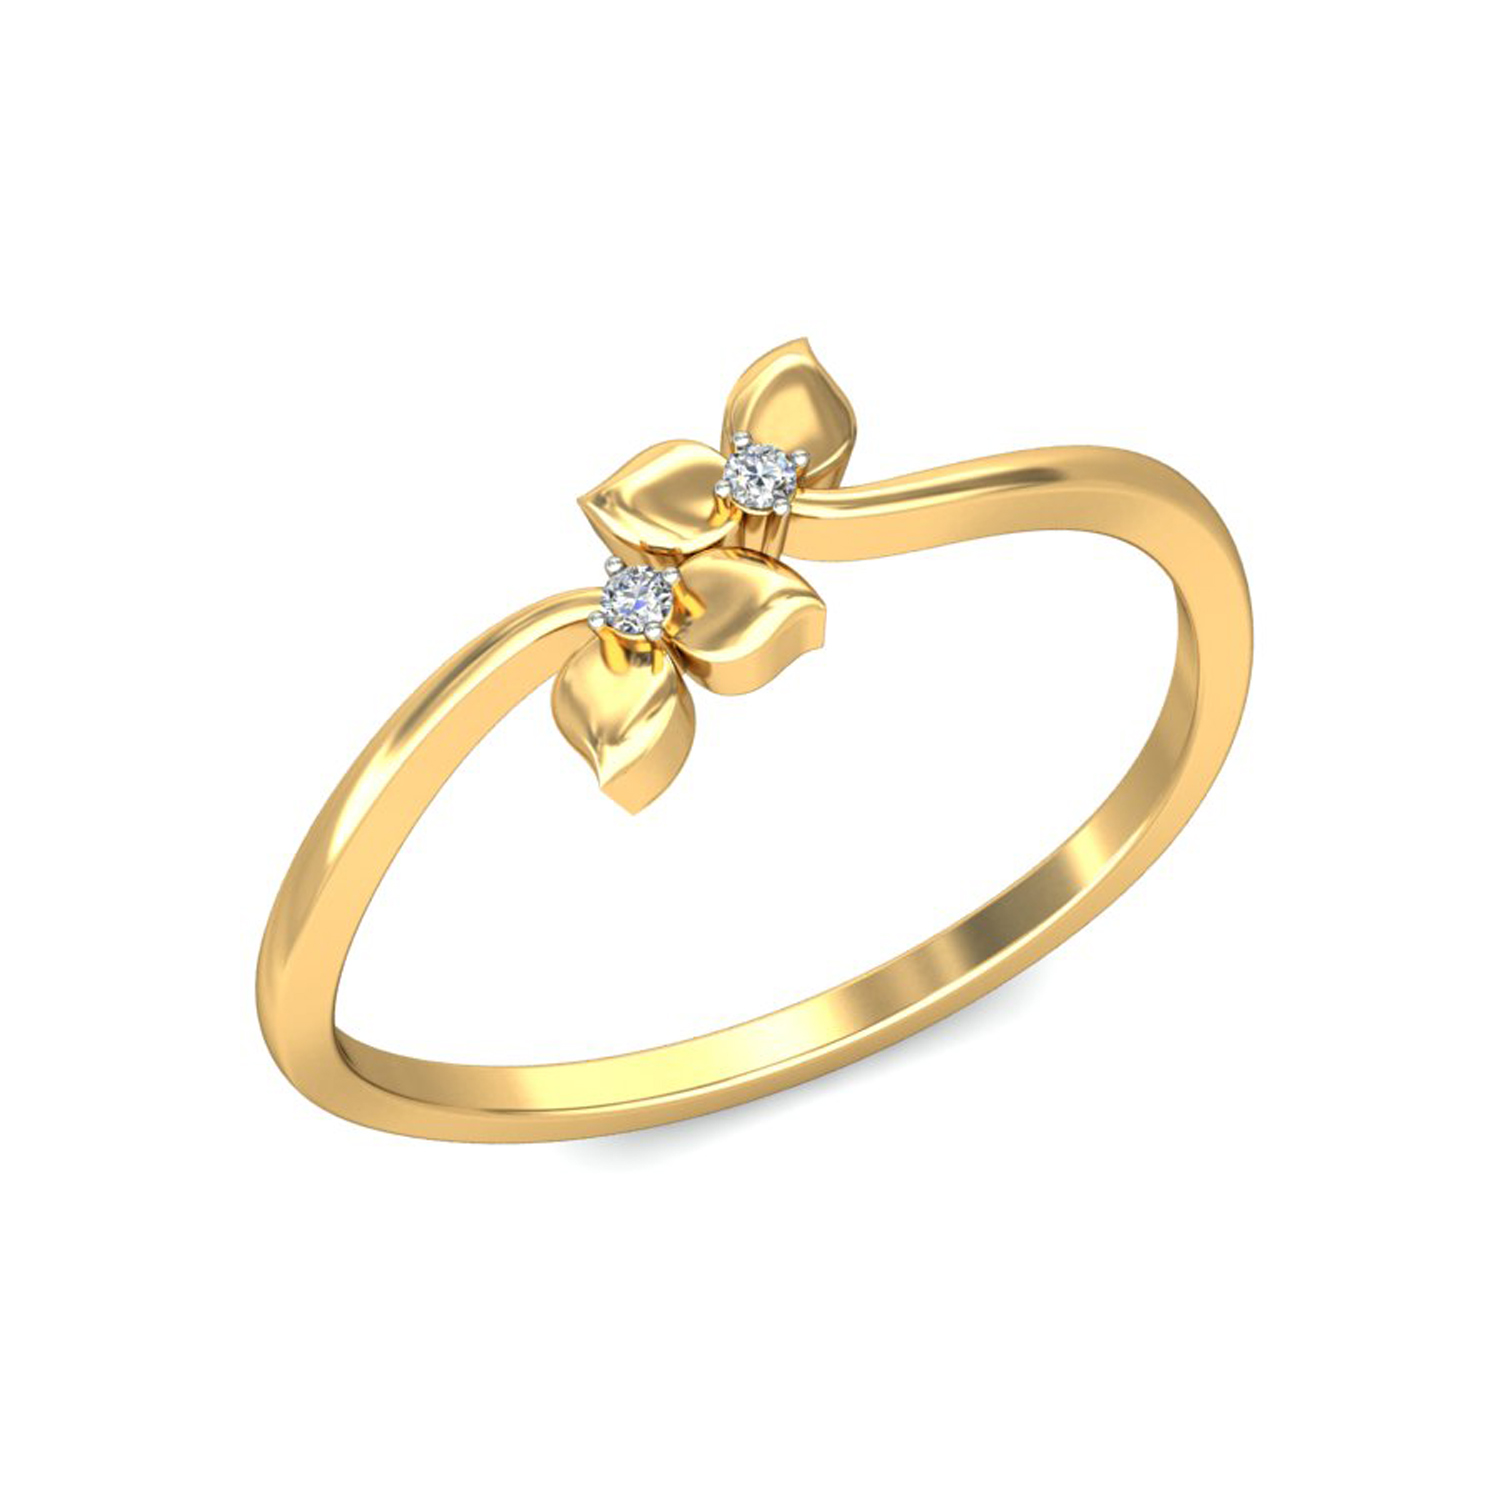 jeweller p snapdeal pc on by diamond ring design wearyourshine om buy